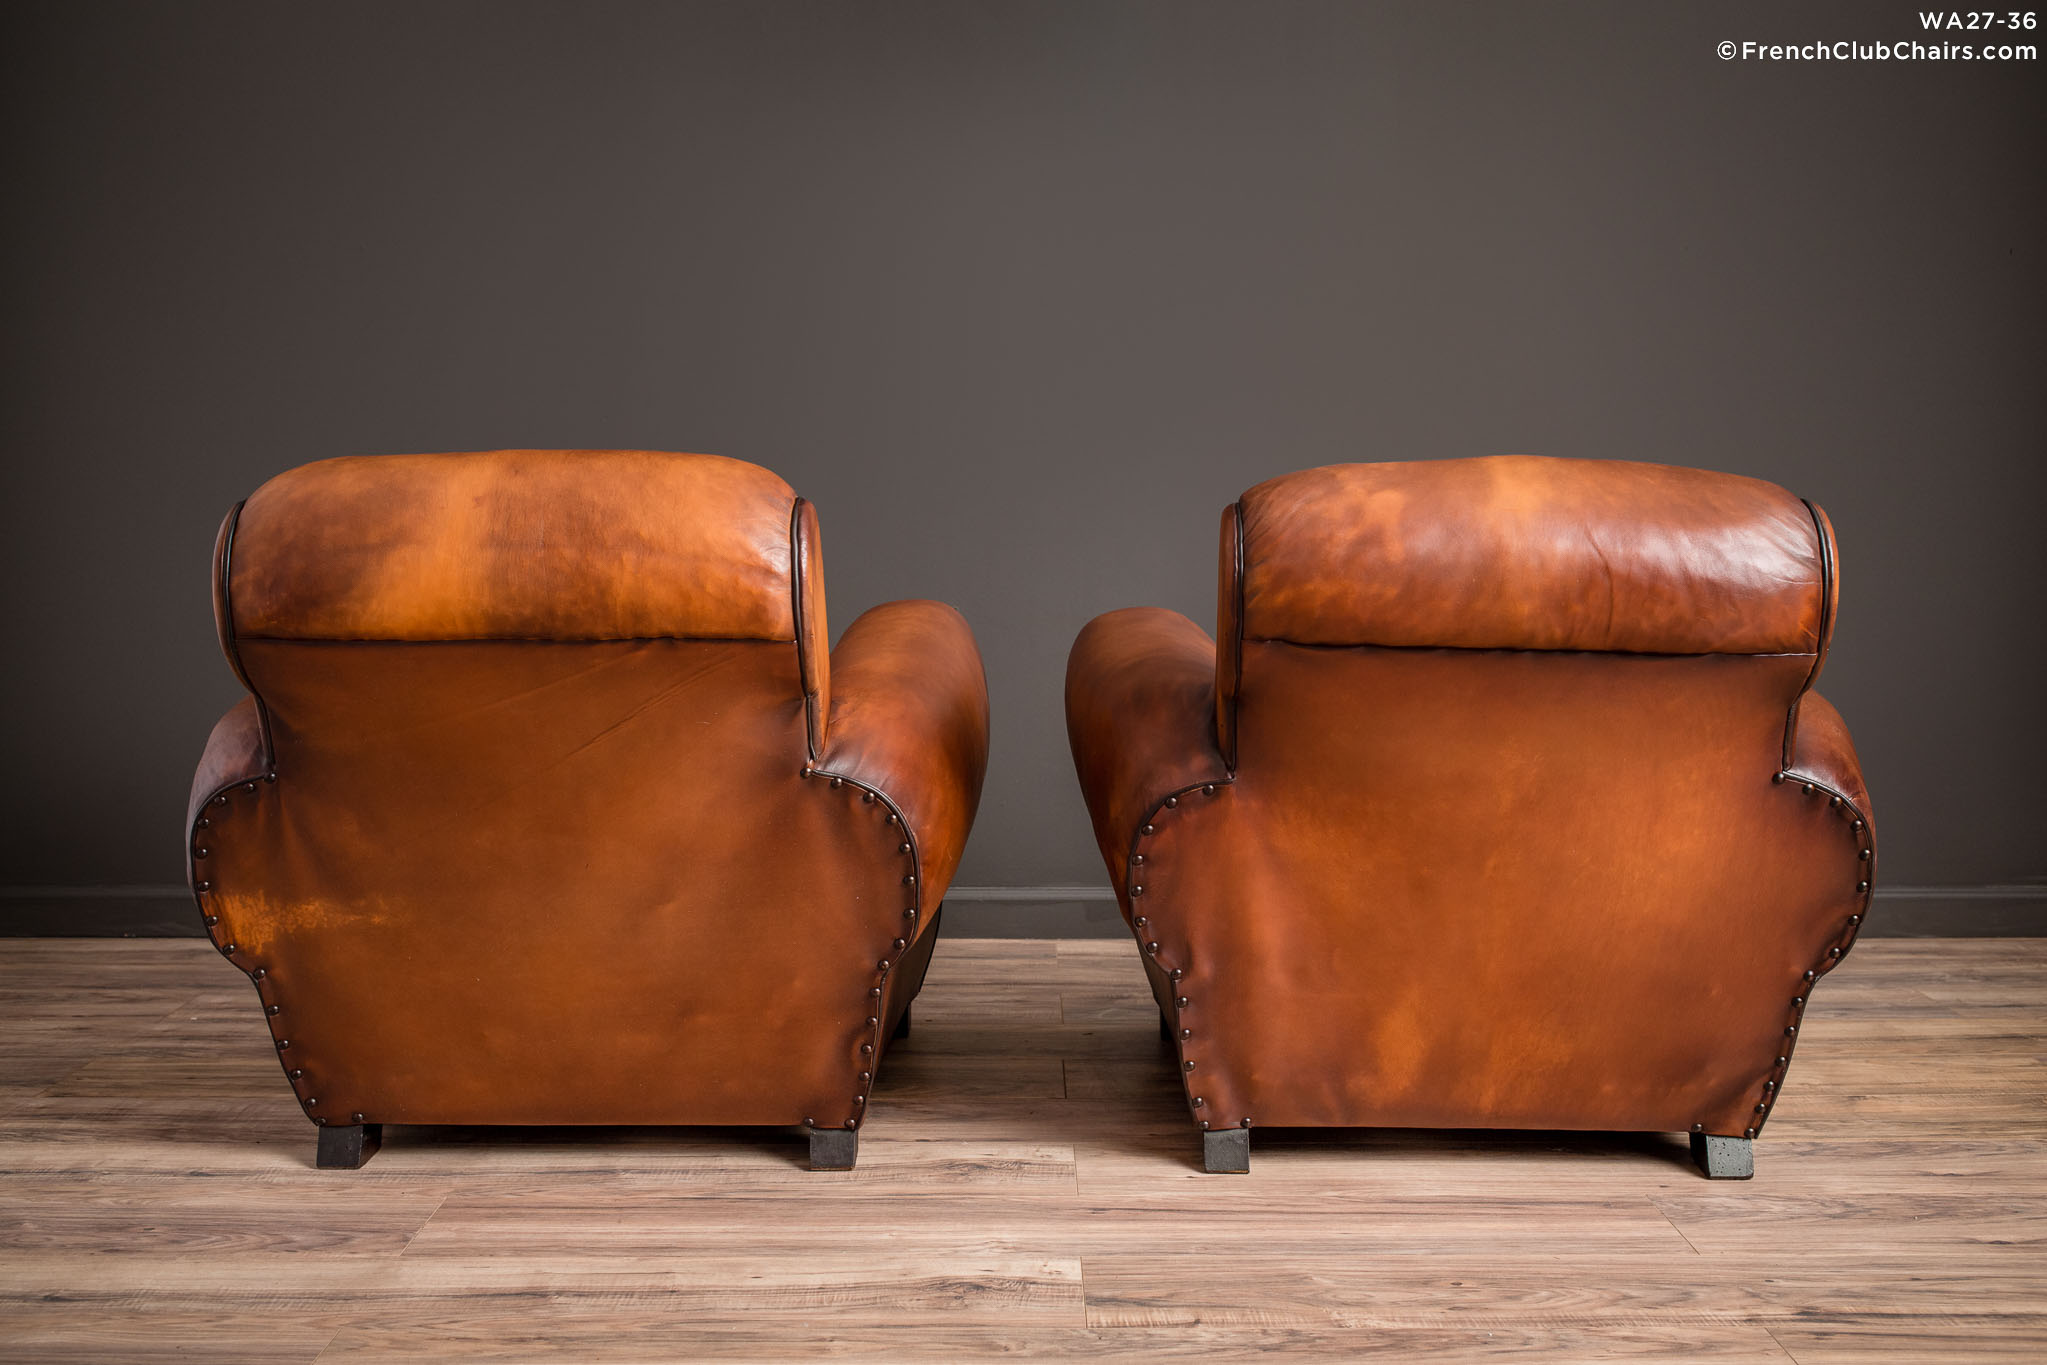 WA_27-36_Liseaux_Giant_Dark_Rollback_Pair_R_2BK-v01-williams-antiks-leather-french-club-chair-wa_fcccom